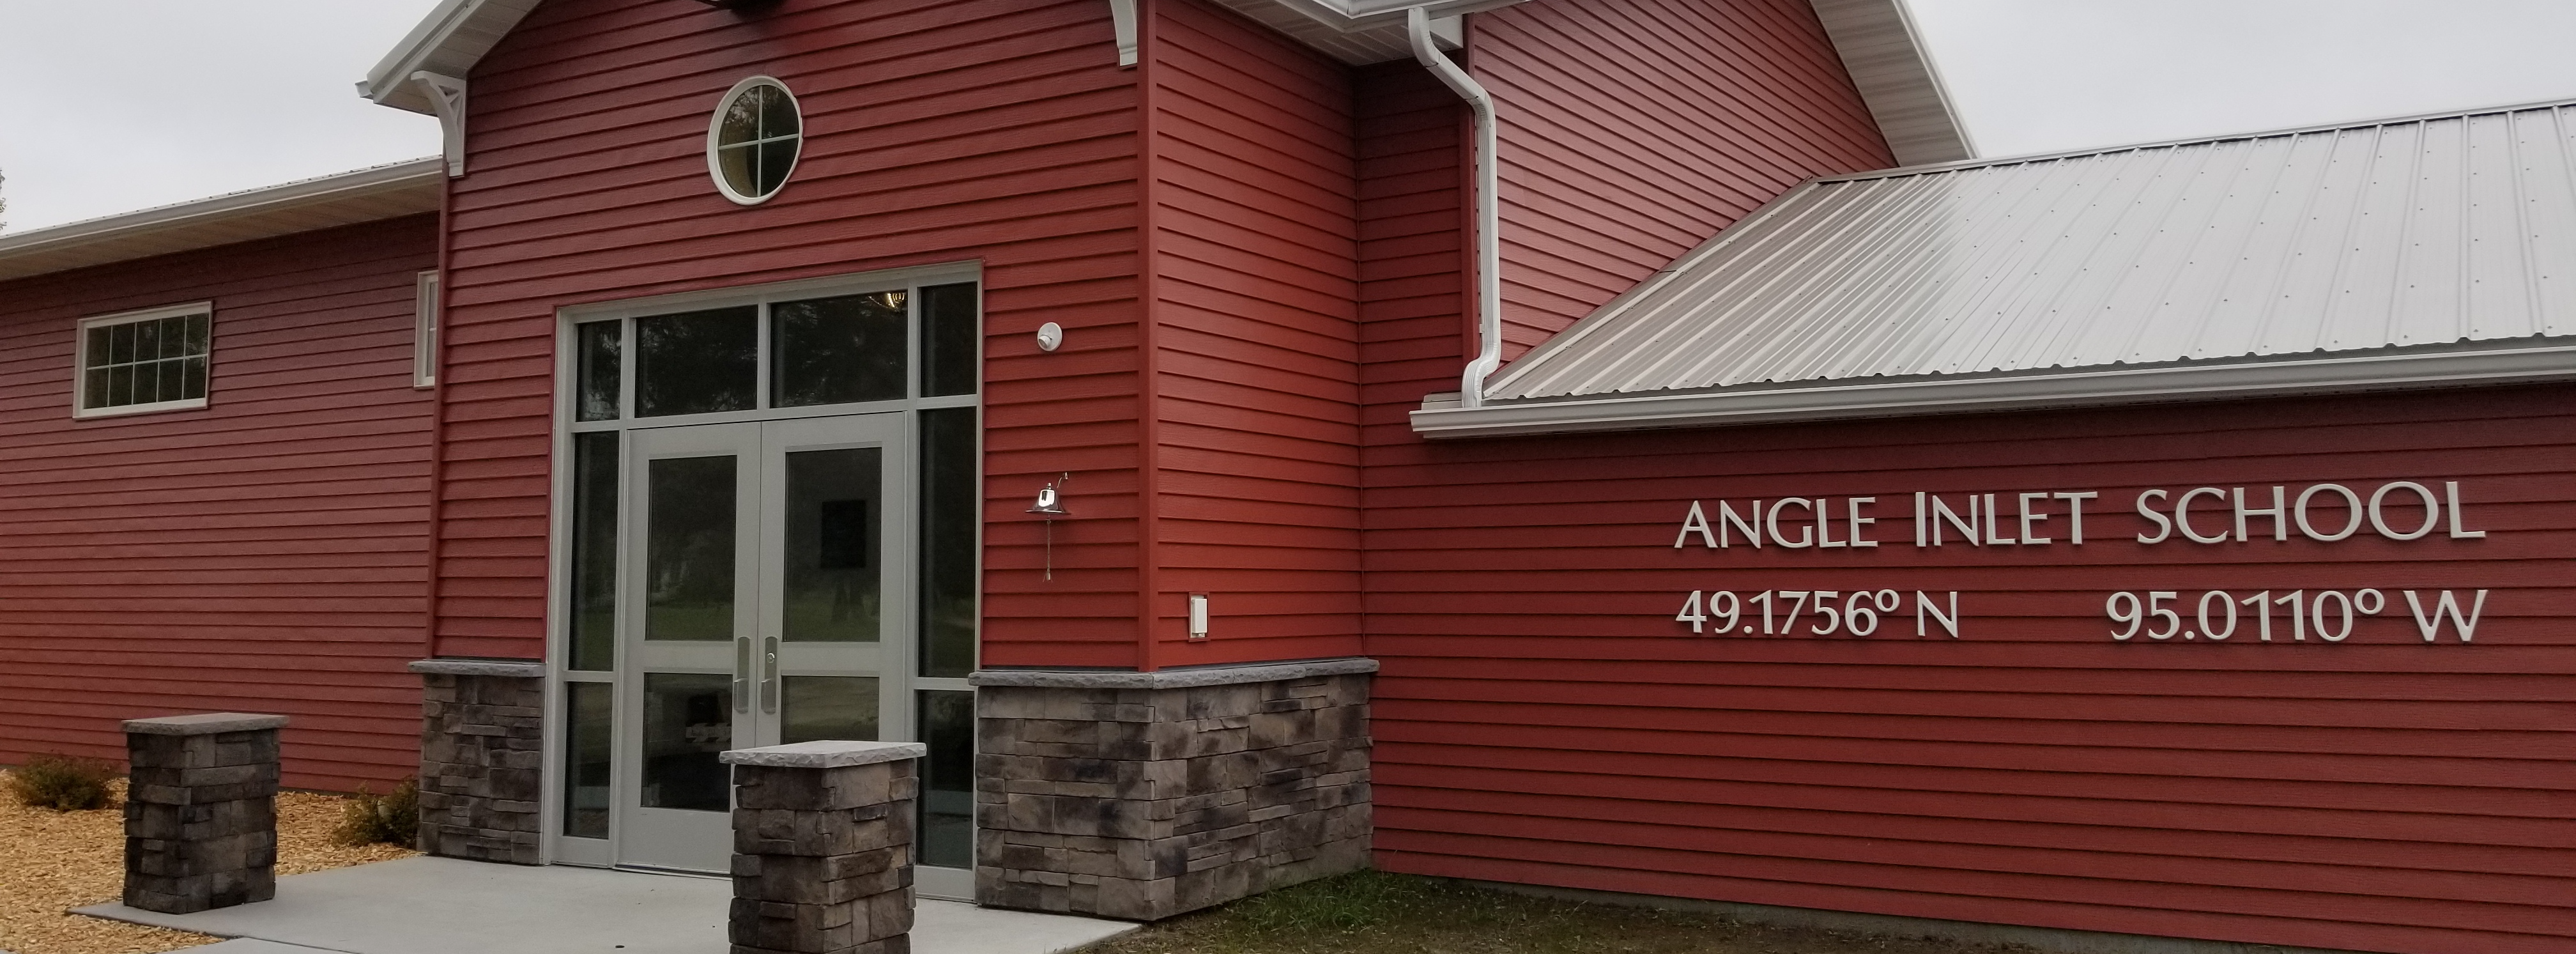 Angle Inlet School front